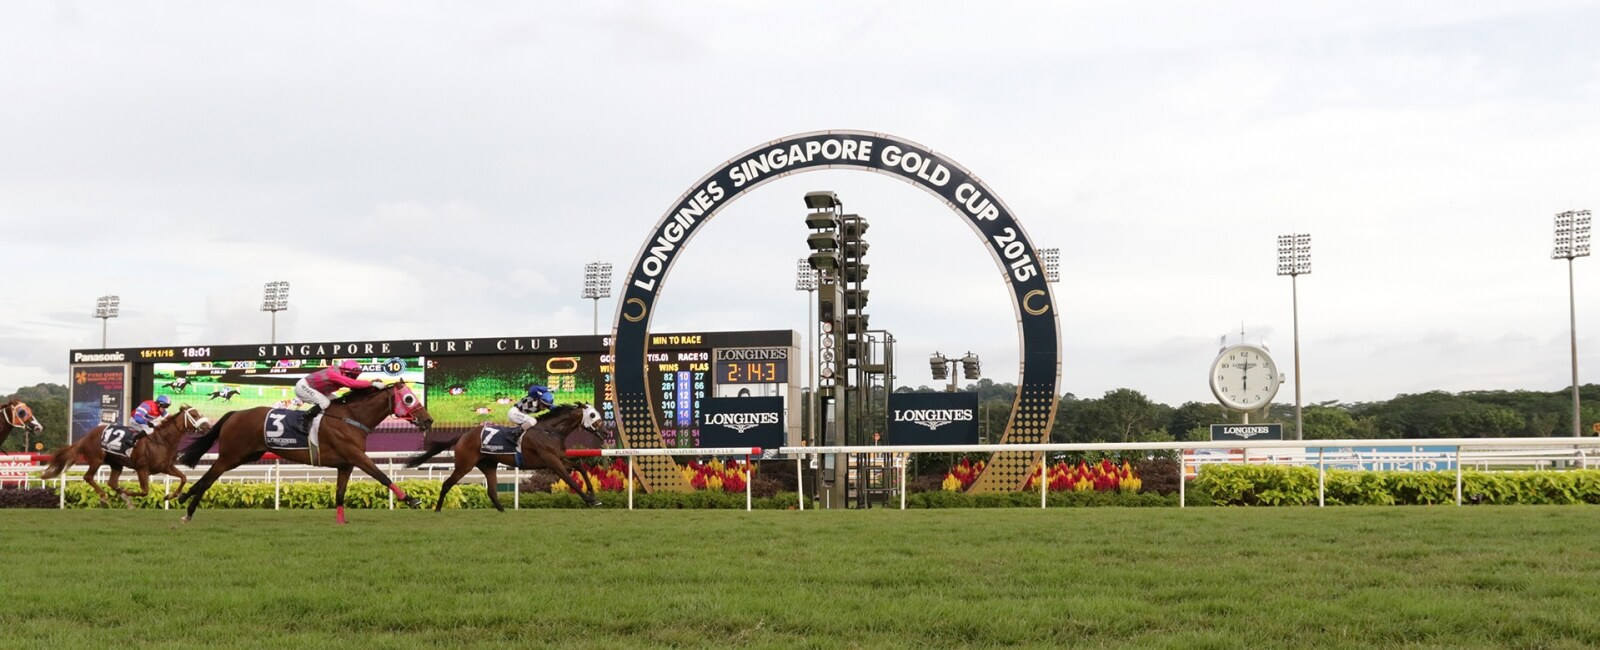 Horse Racing Singapore Gold Cup